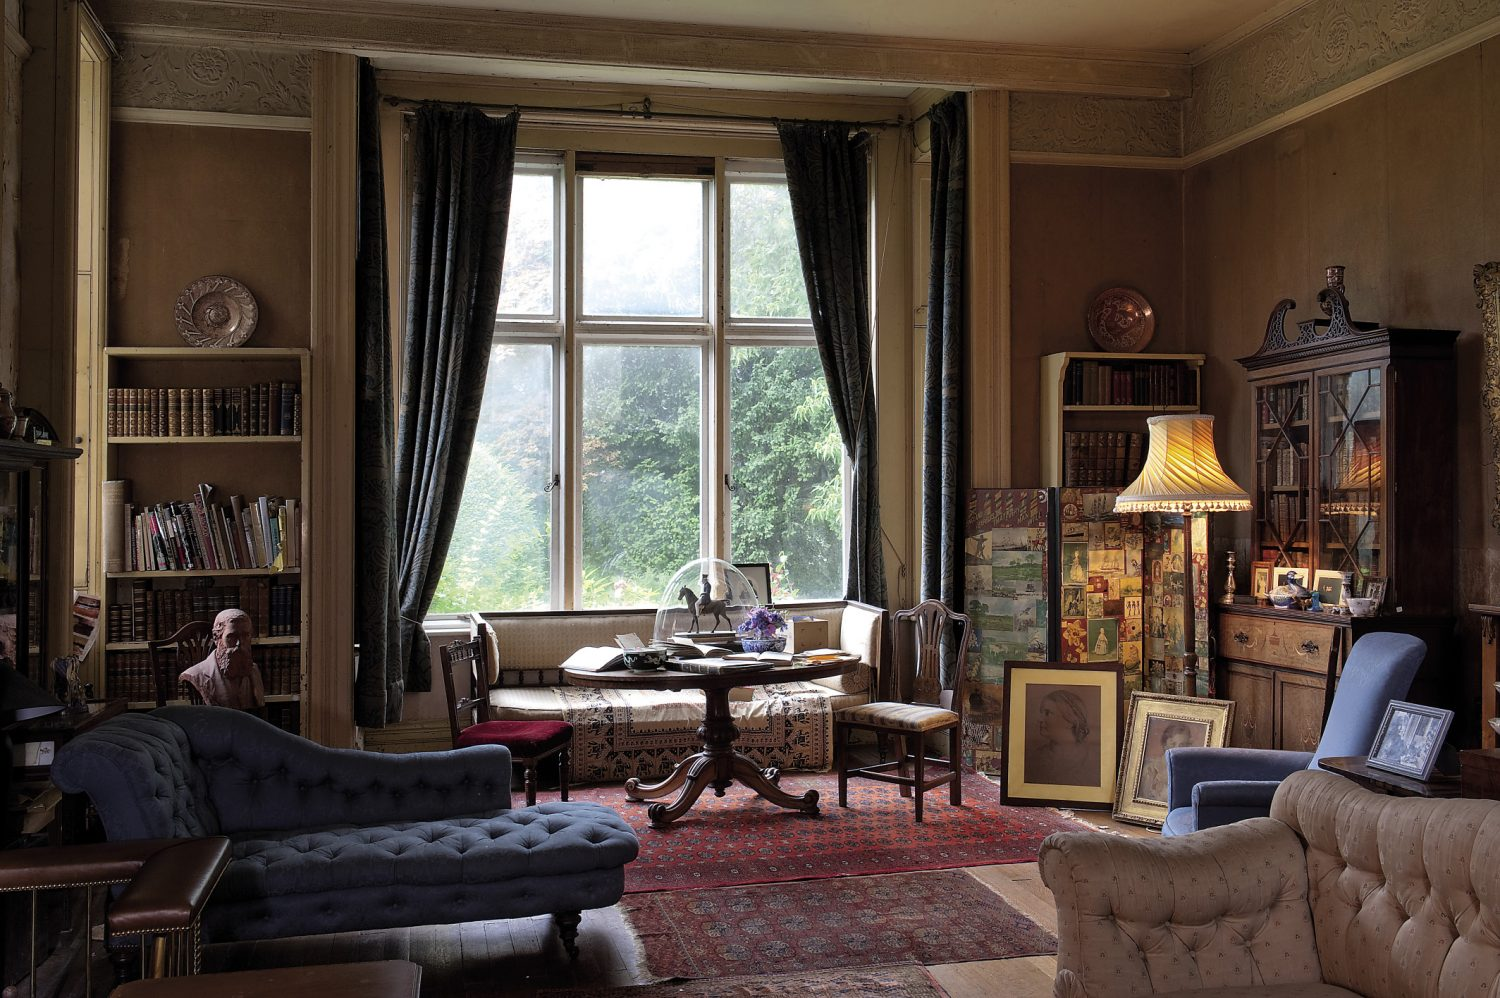 The drawing room: part of the most recent (Victorian) extension added by Milicent. It is a big room that features tall ceilings and has as air of austerity. The William Morris curtains suggest how grand this room might once have been